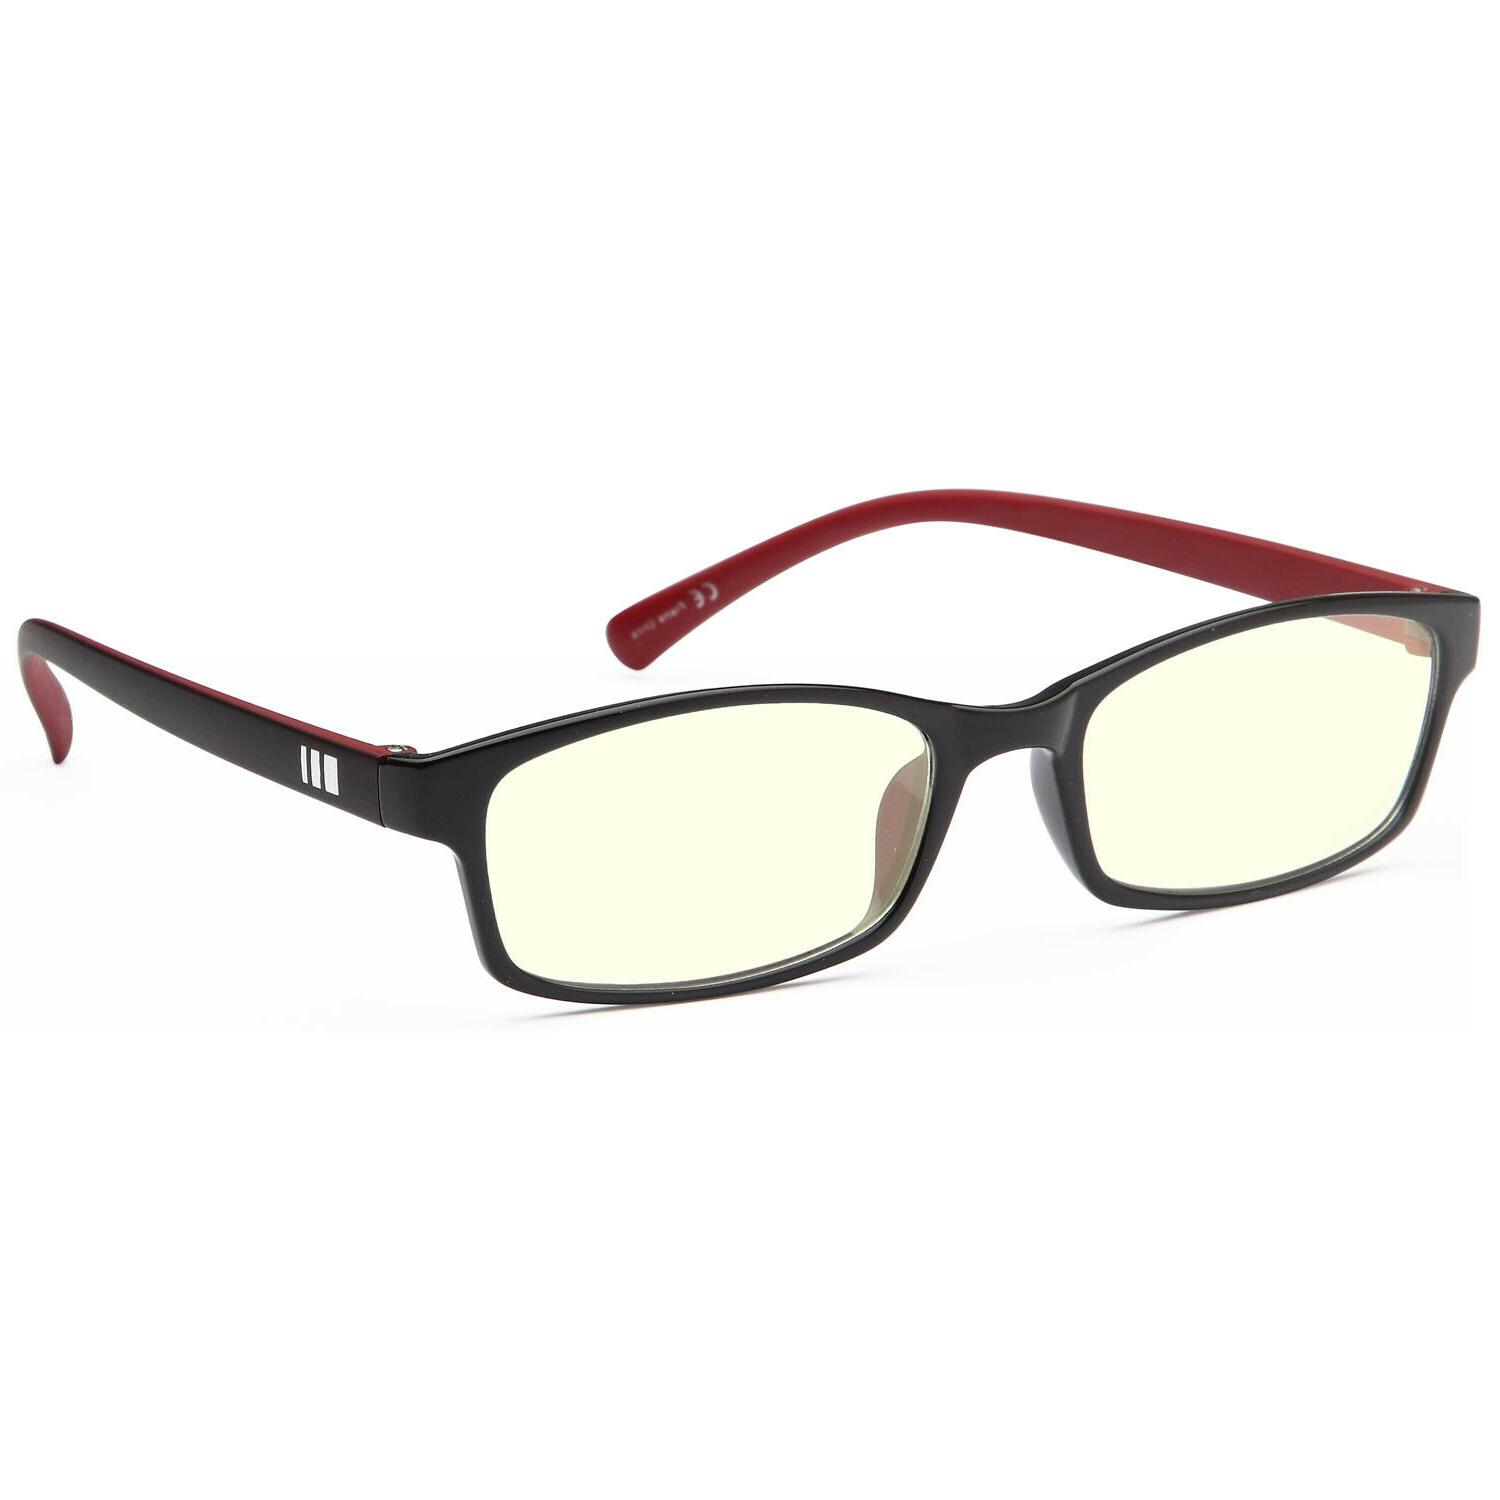 000 computer gaming reading glasses